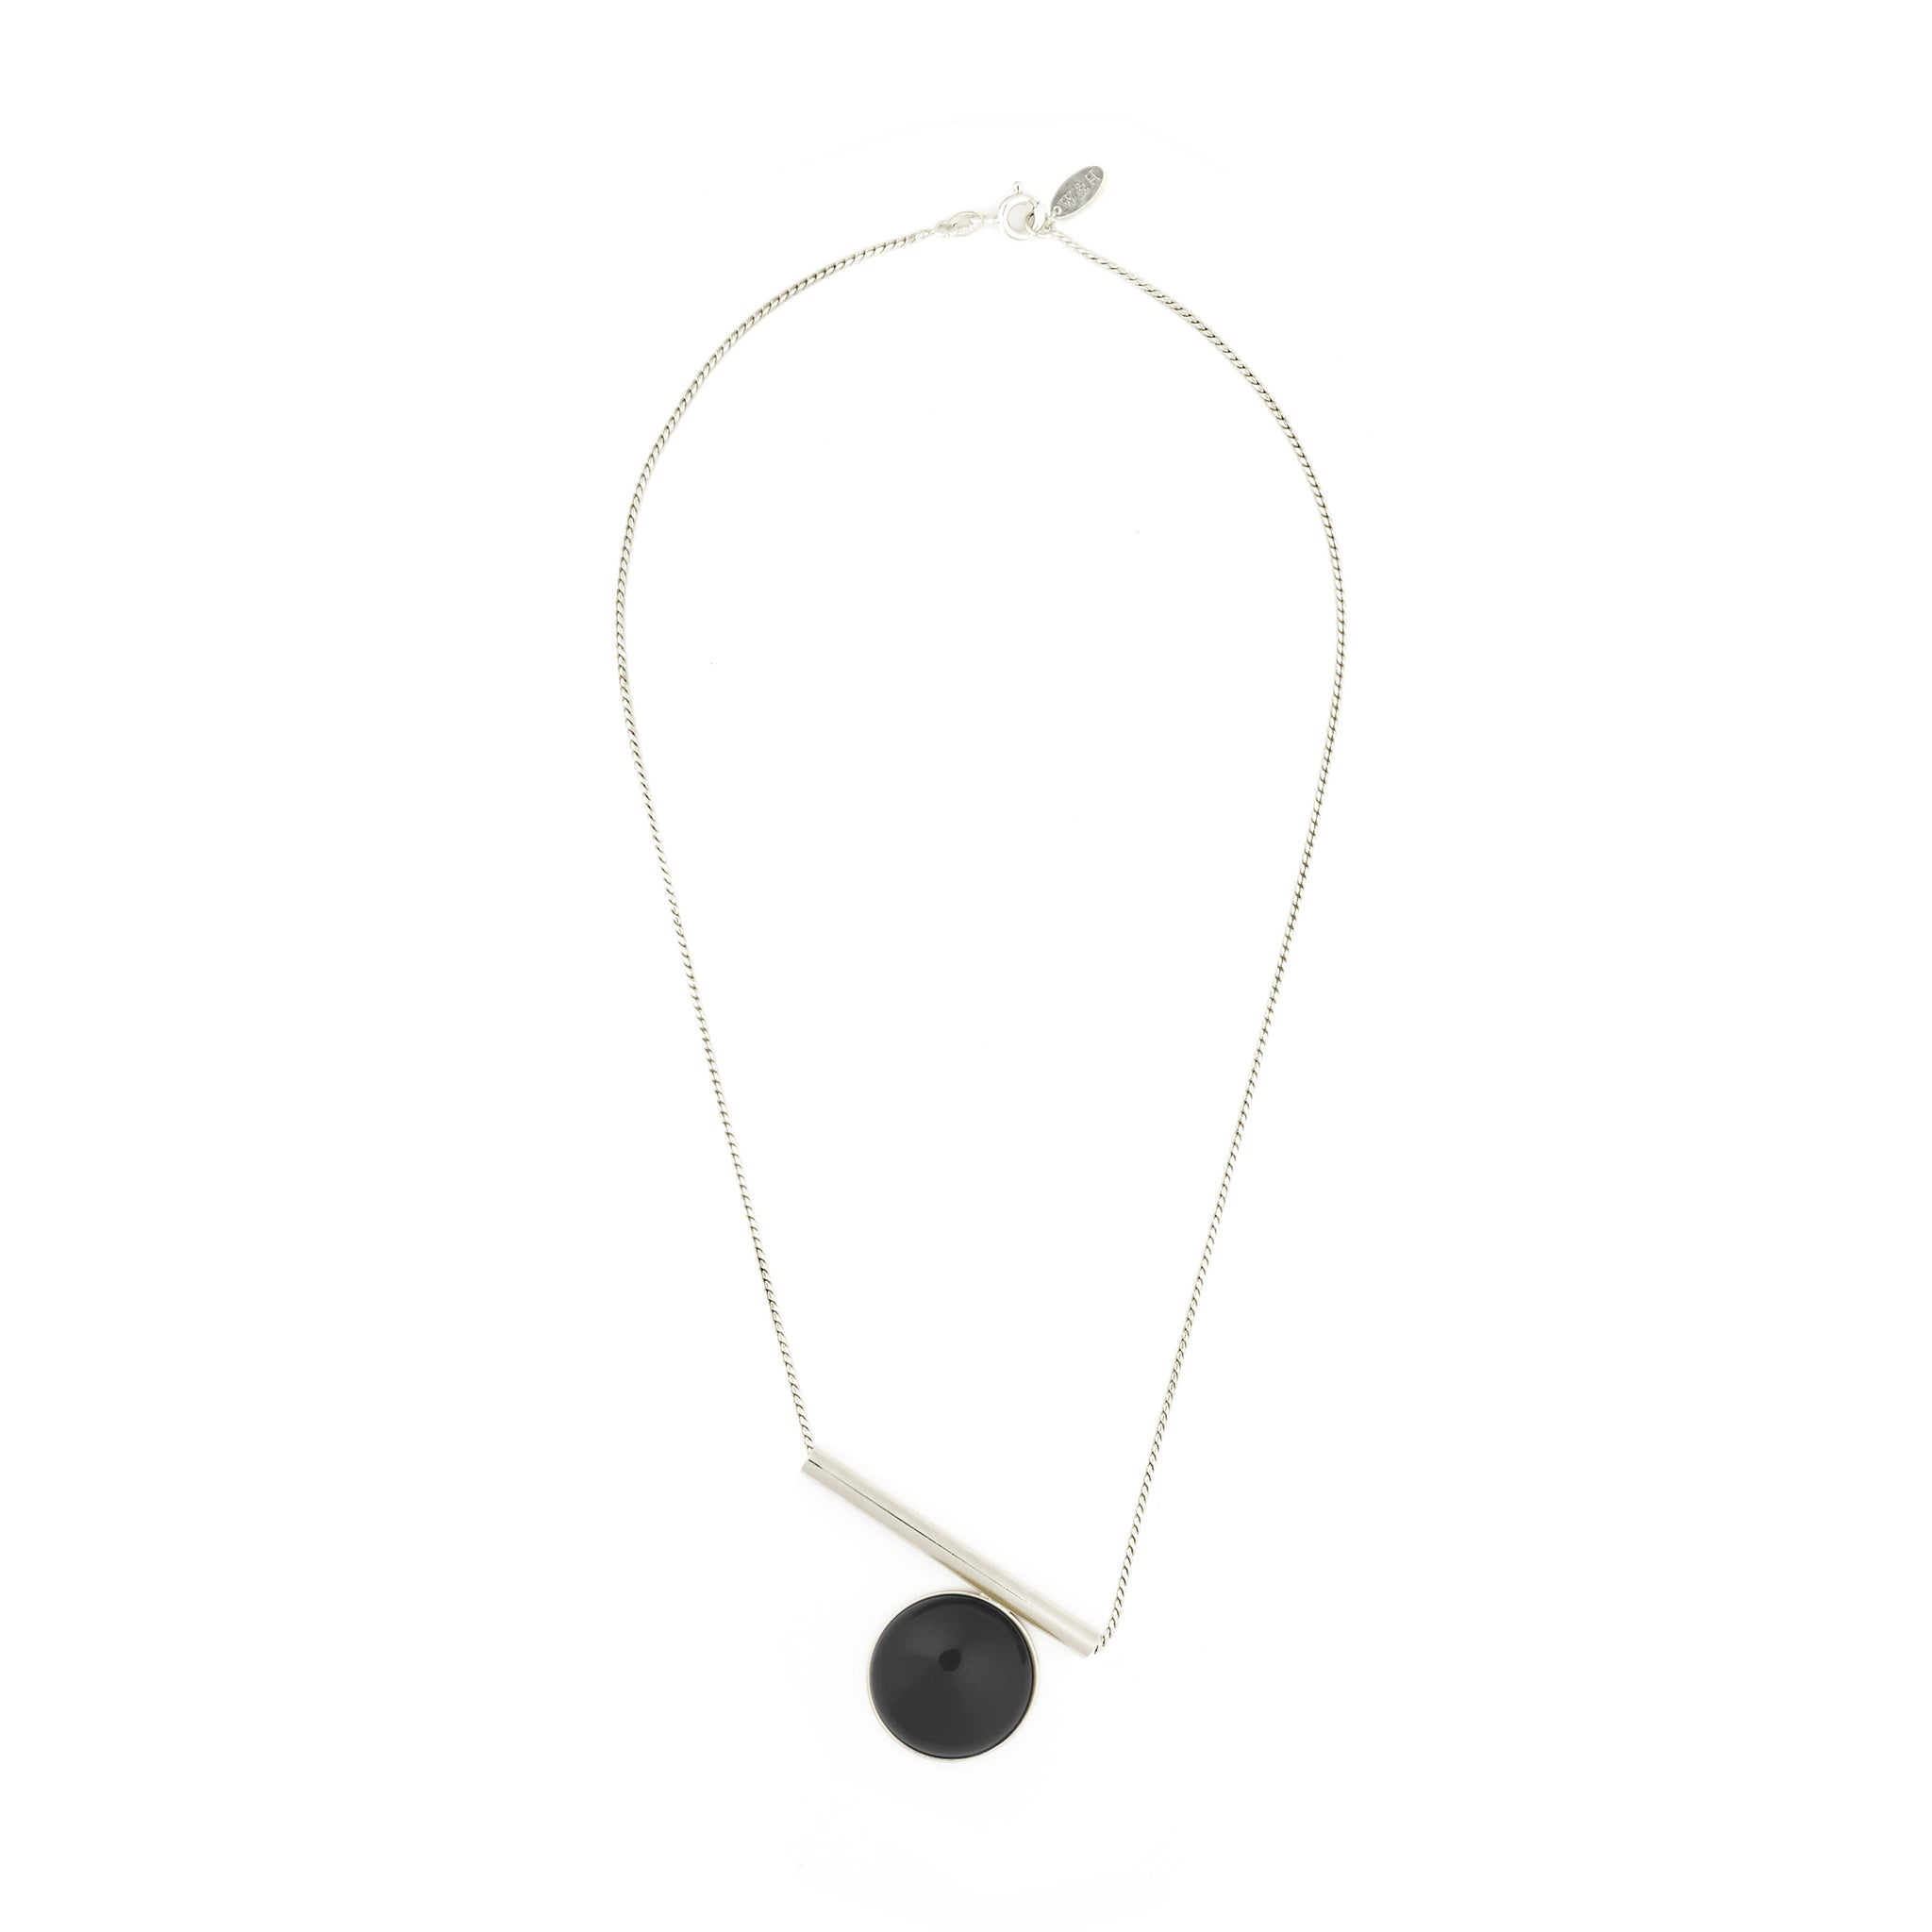 Sterling silver Necklace with Onyx stone